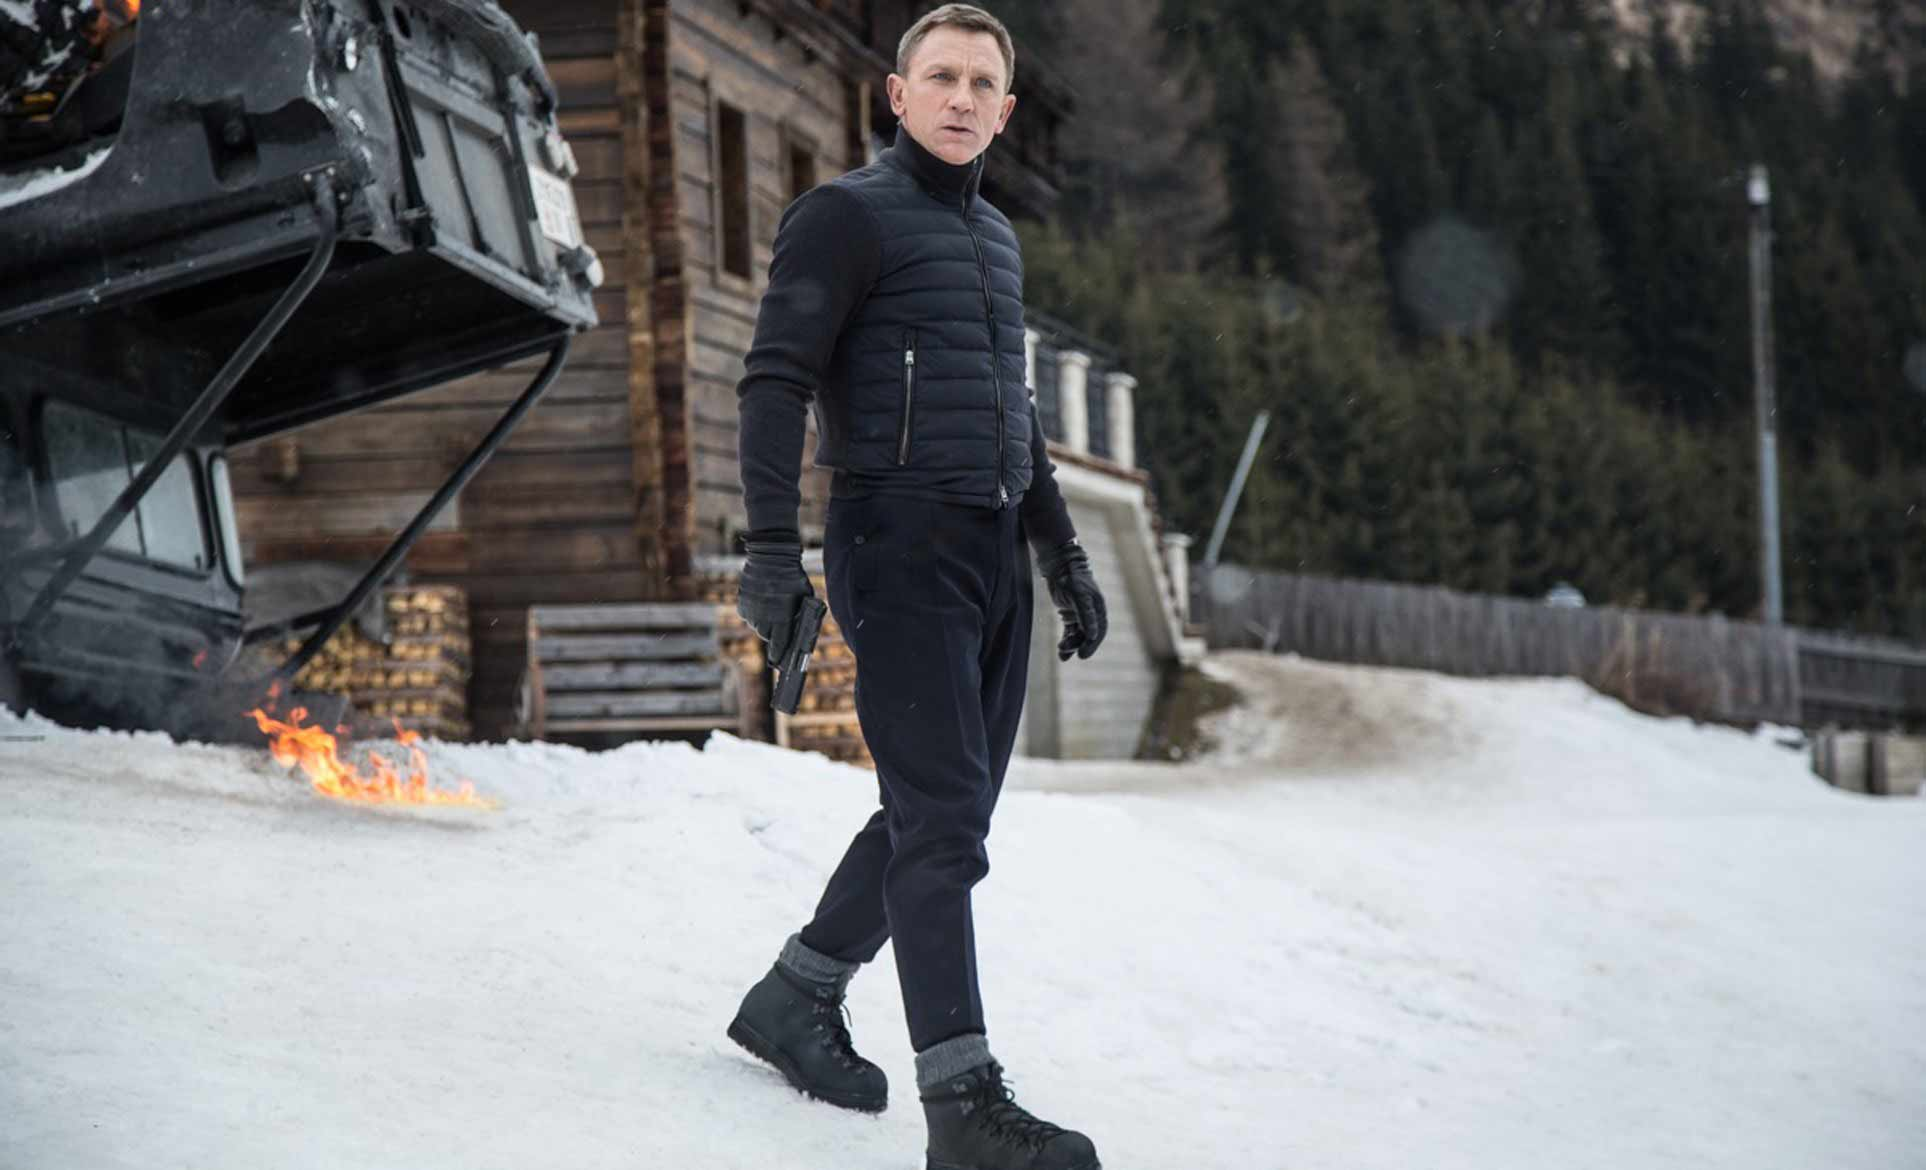 daniel-craig-james-bond-snow-look-spectre-jacket-helicopter